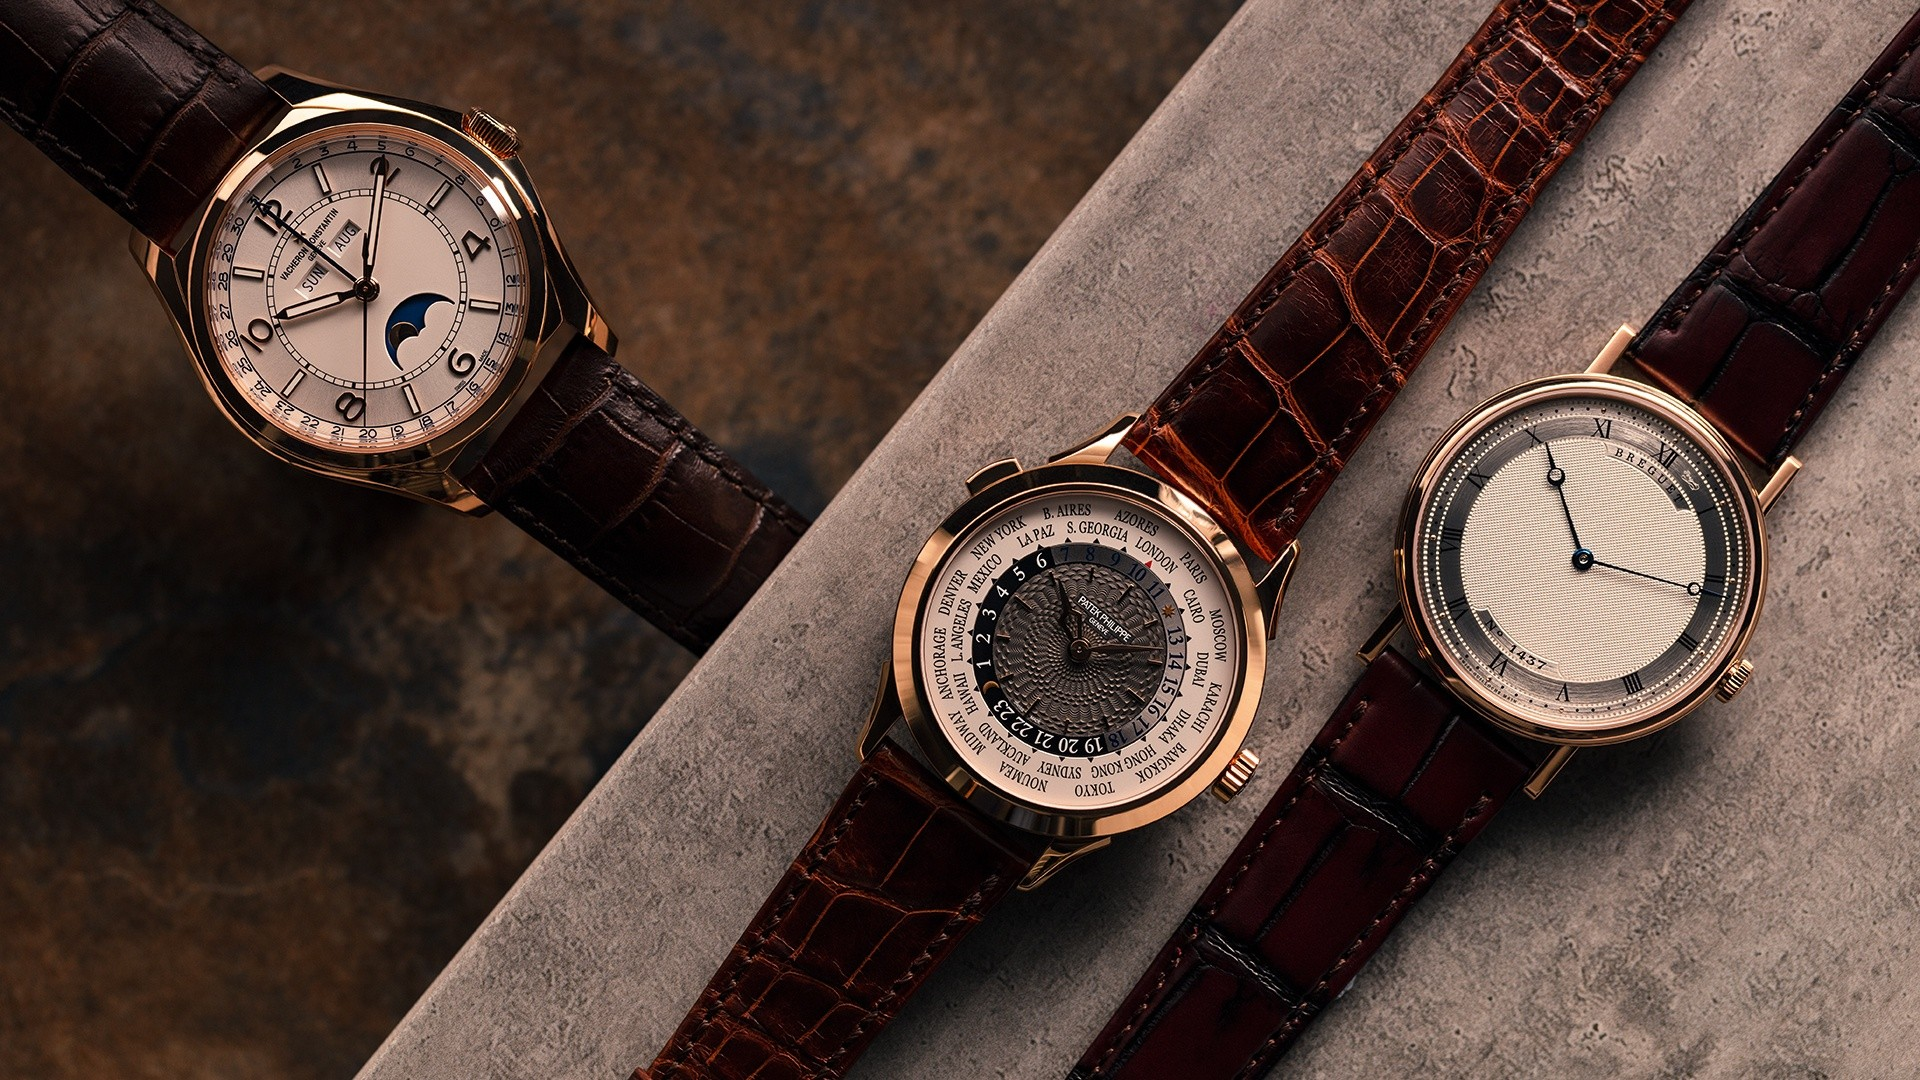 World's best rose gold watches: Vacheron Constantin FiftySix Complete Calendar; Patek Philippe 5230R World Time, and; Breguet Classique Extra-Thin 5157